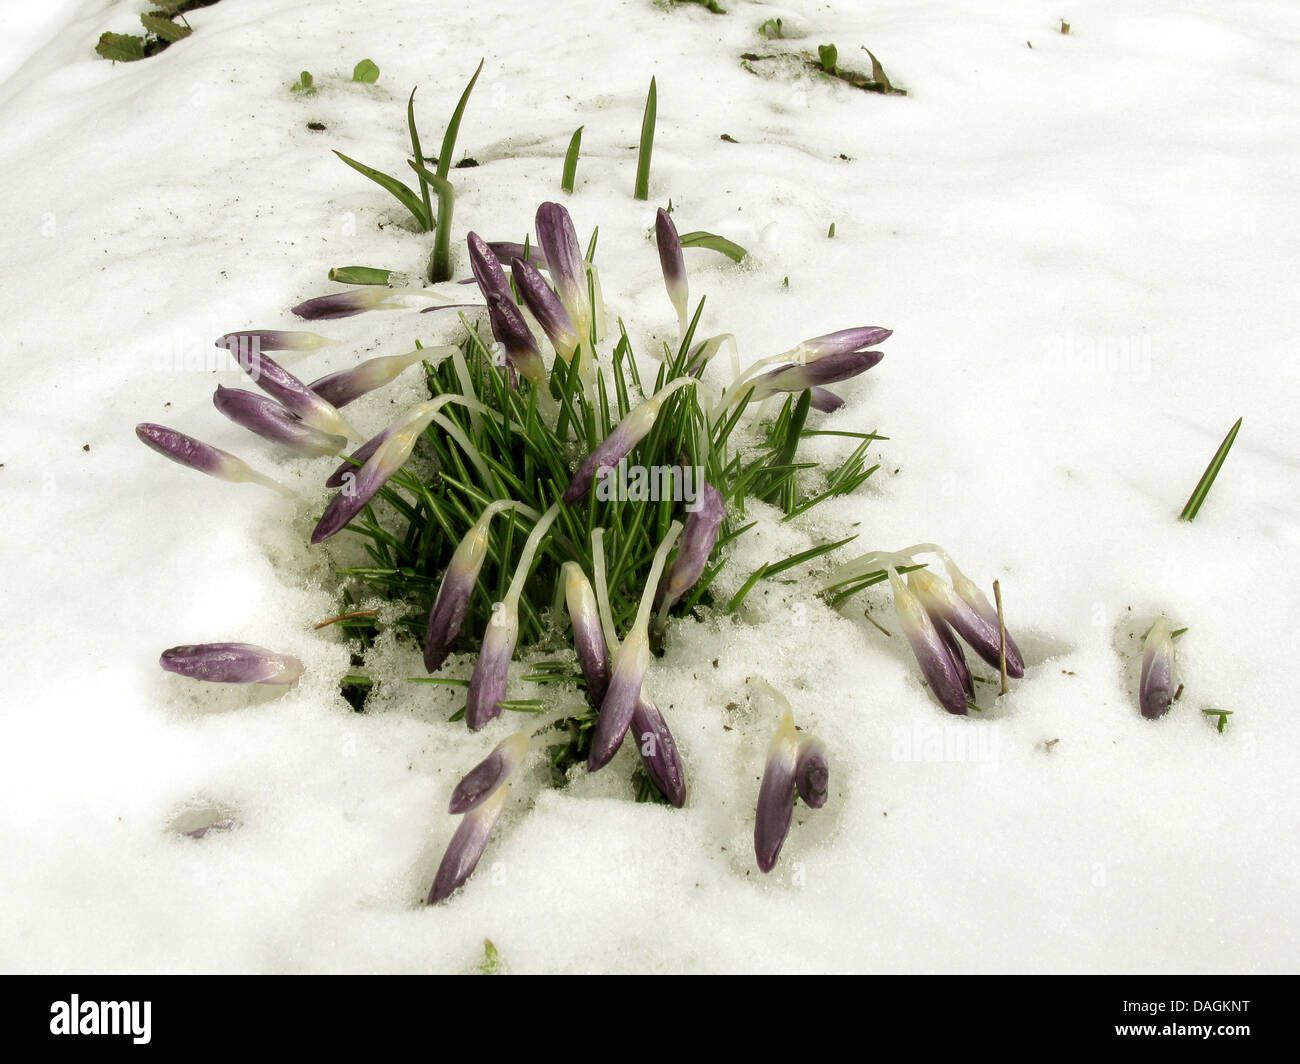 Early Crocus (Crocus tommasinianus), crocusses after snow fall, Germany - Stock Image